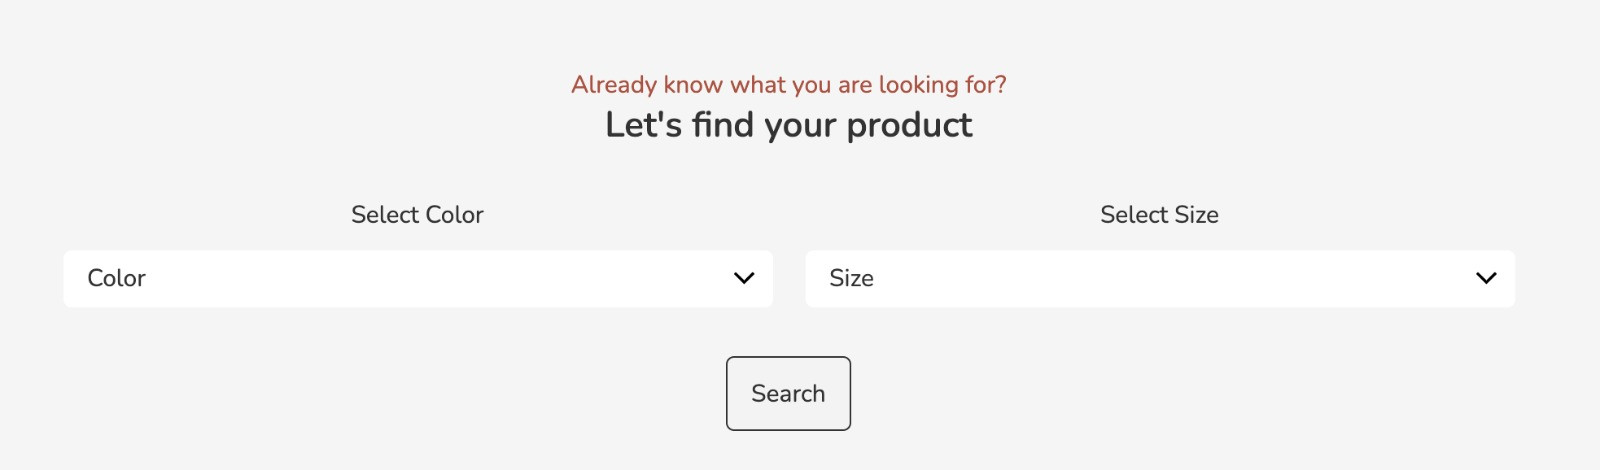 Let's find your product